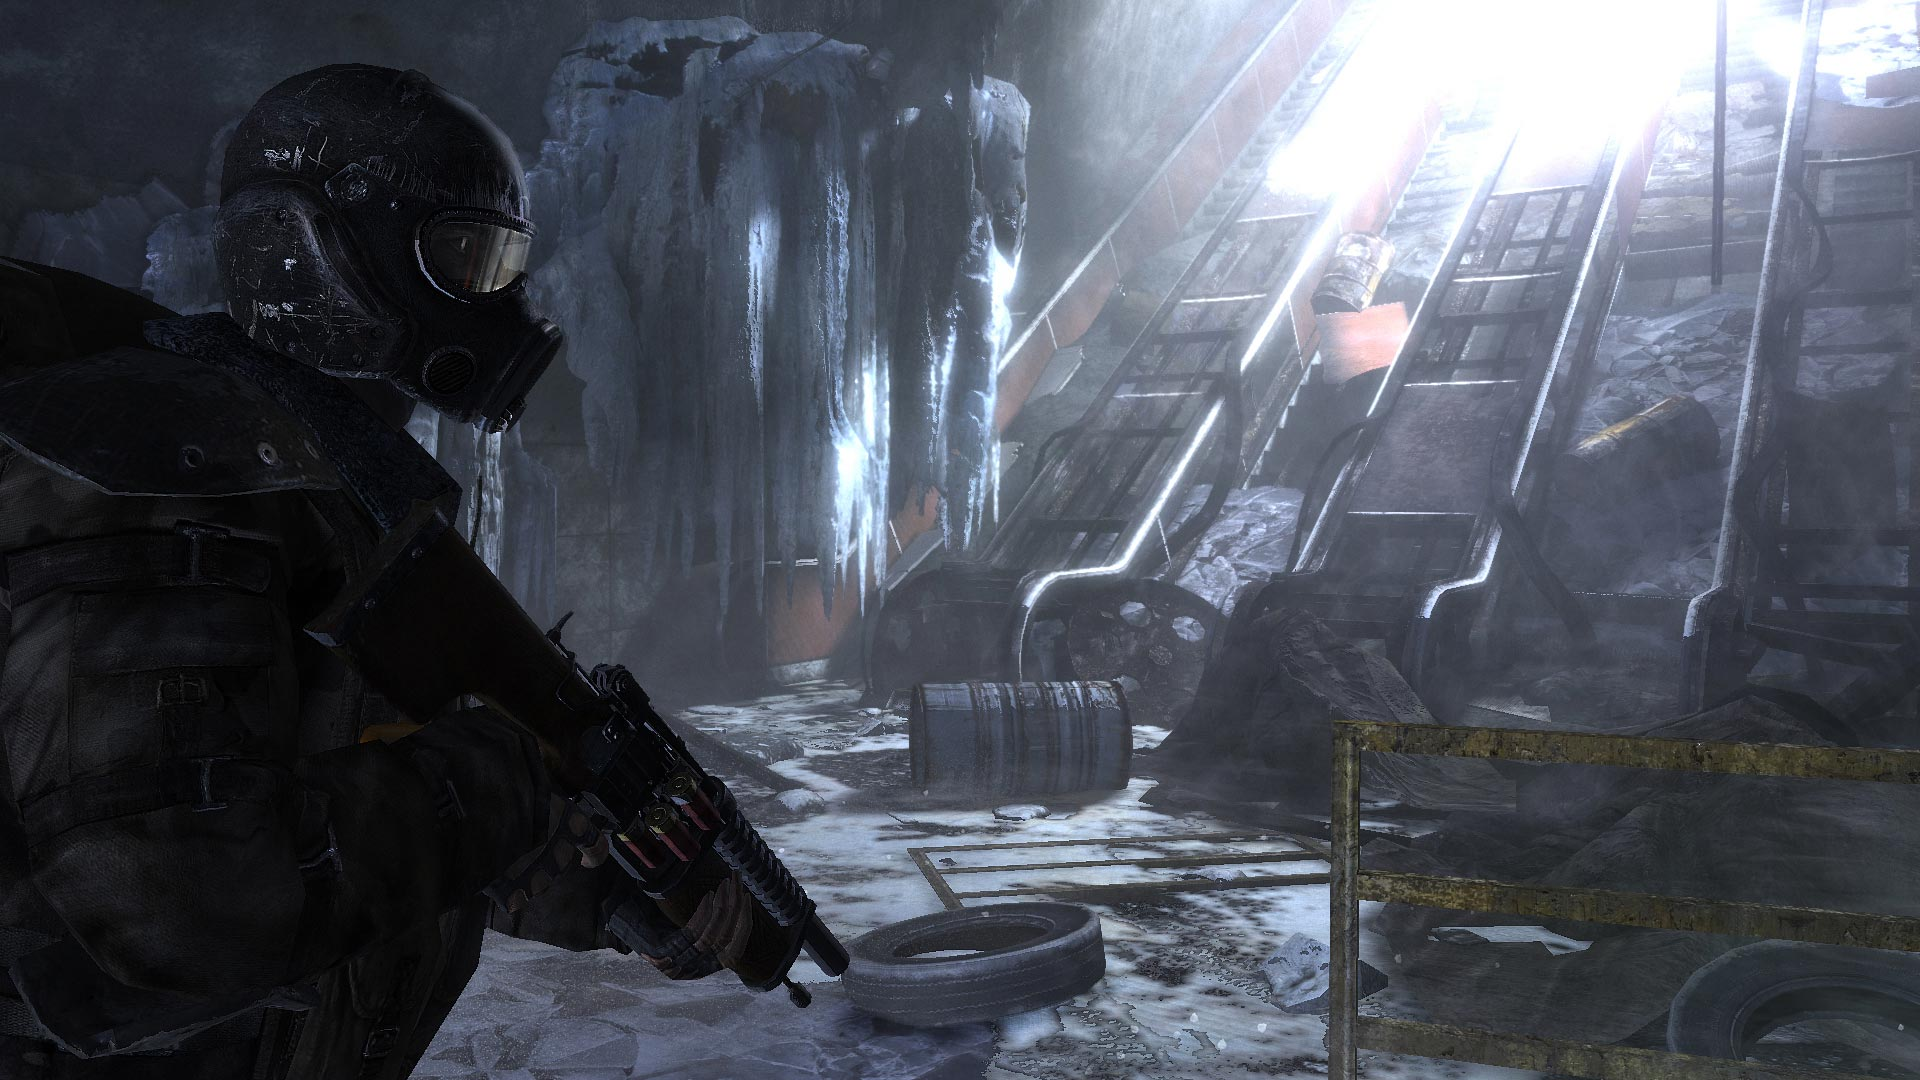 Metro  Last Light Wallpaper  Space Wallpapers in Toplist 1920x1080